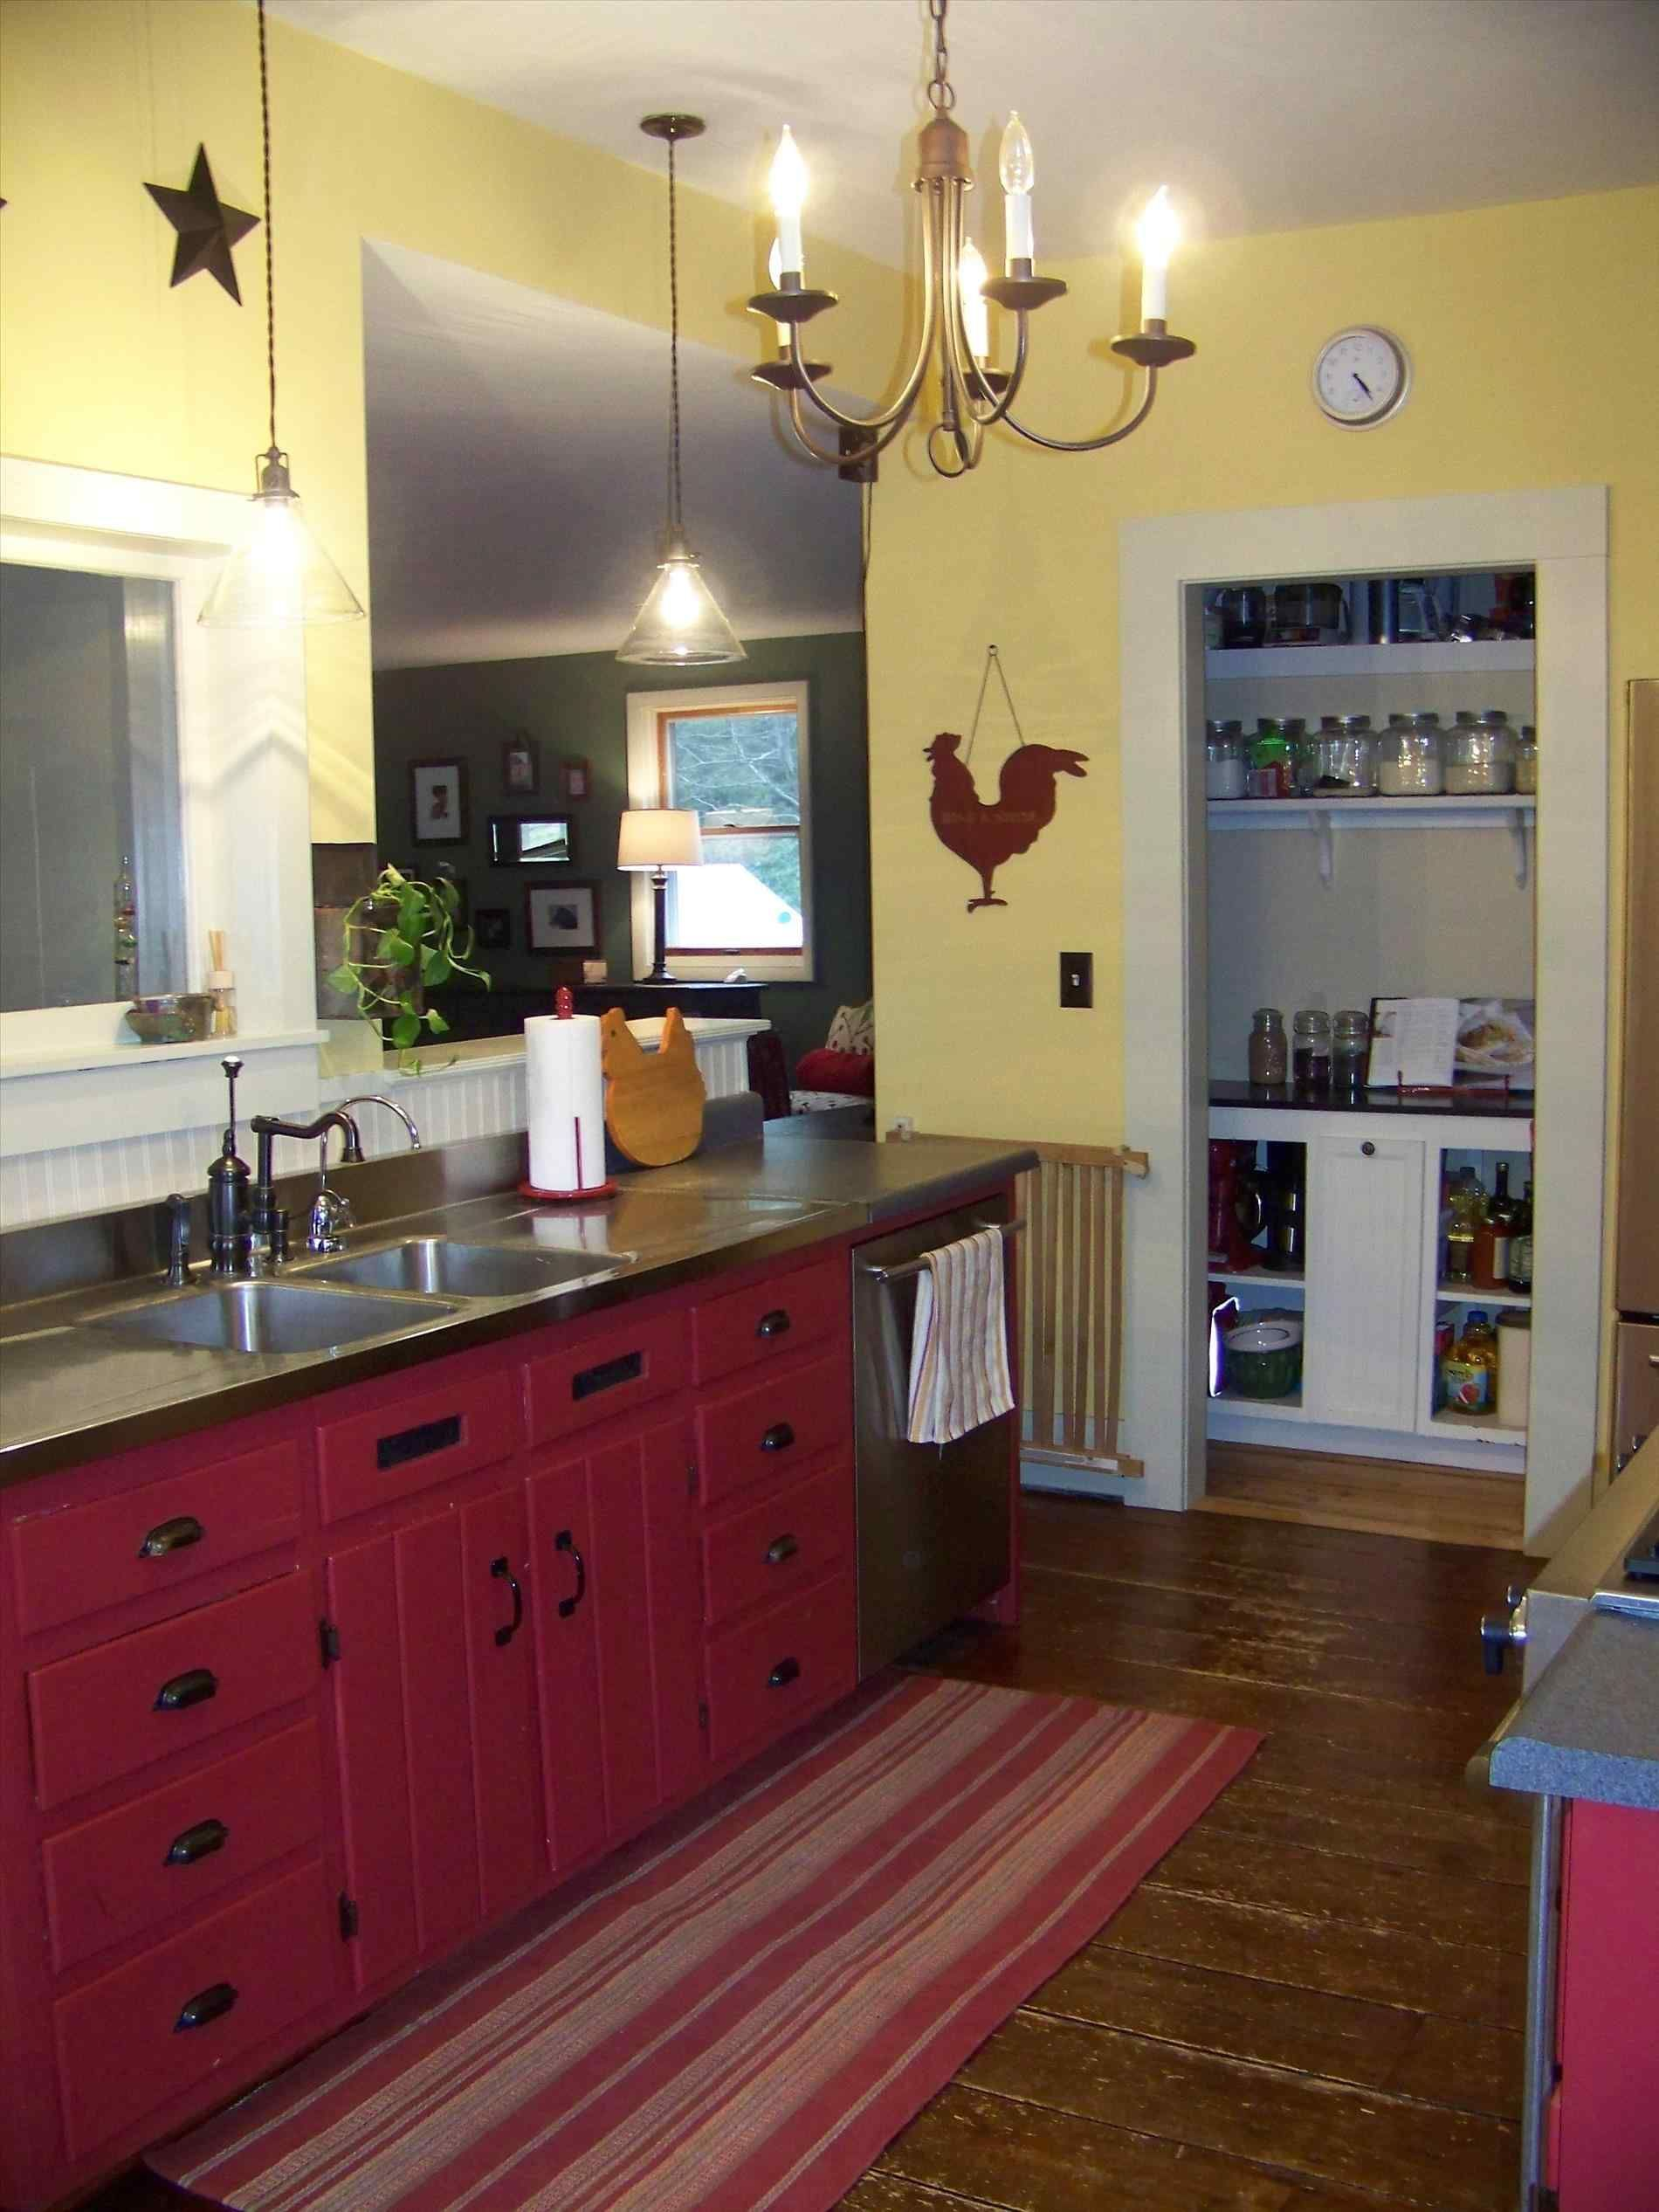 Pin By Amy Koepp On Kitchens White Farmhouse Kitchen Decor Cabinets